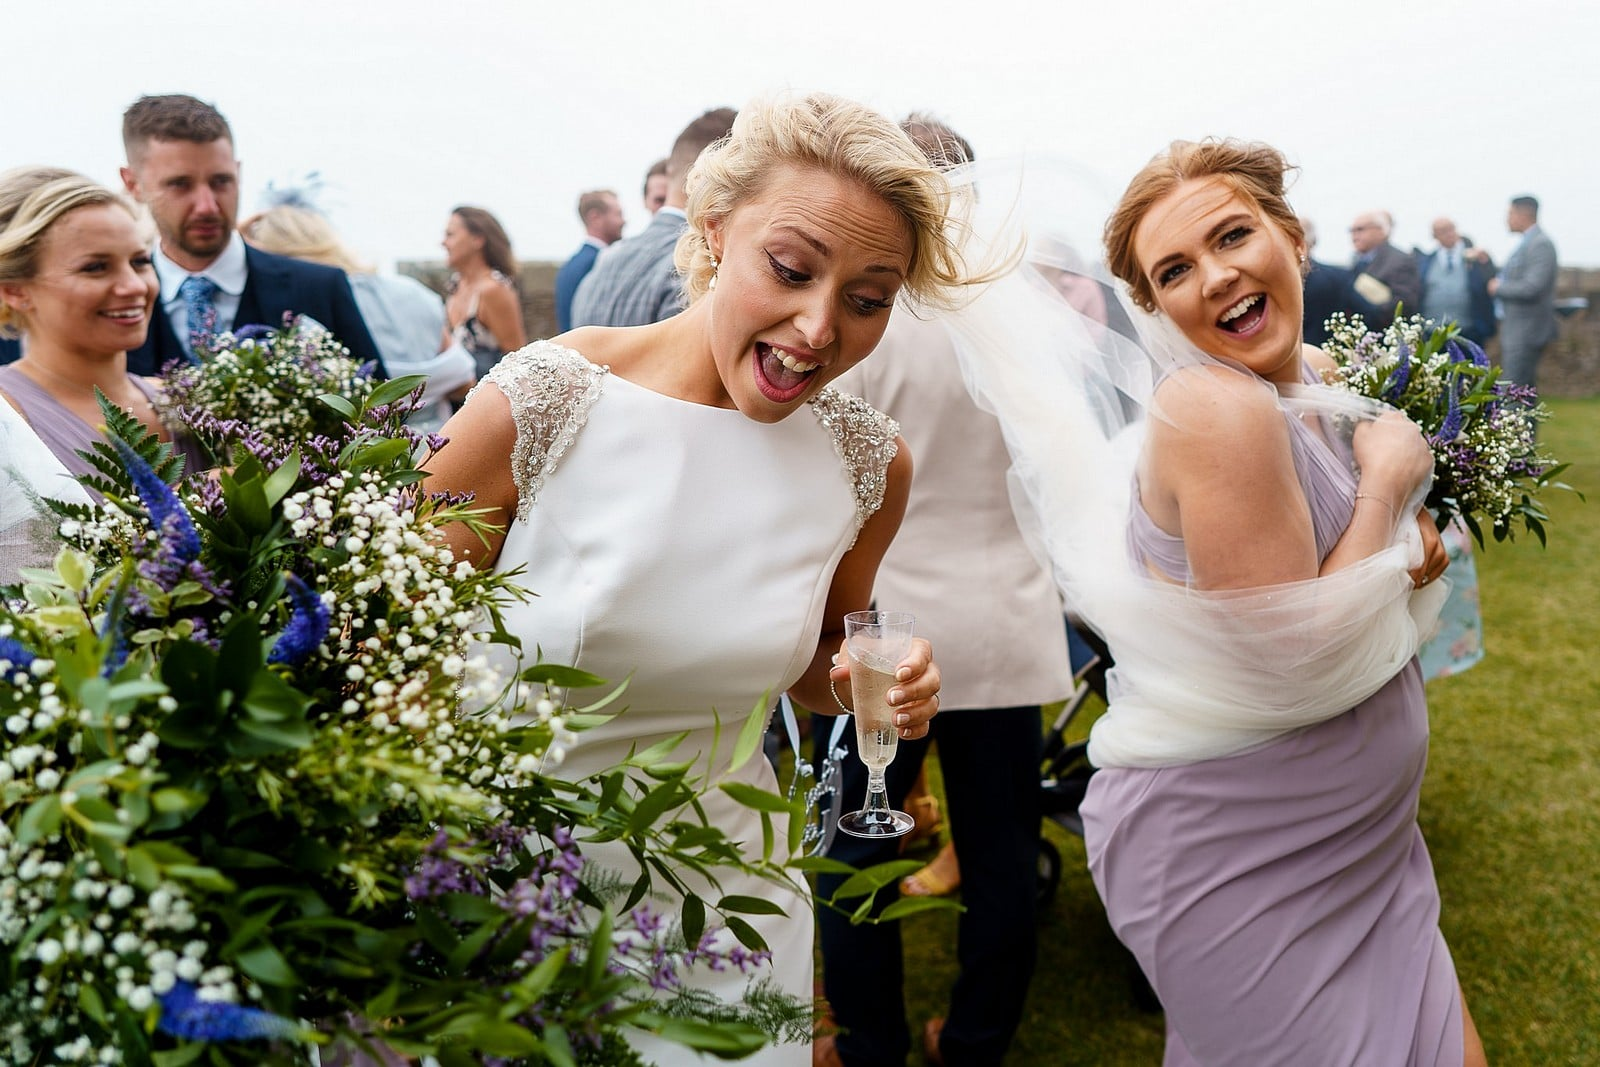 Candid wedding photography at Pendennis Castle